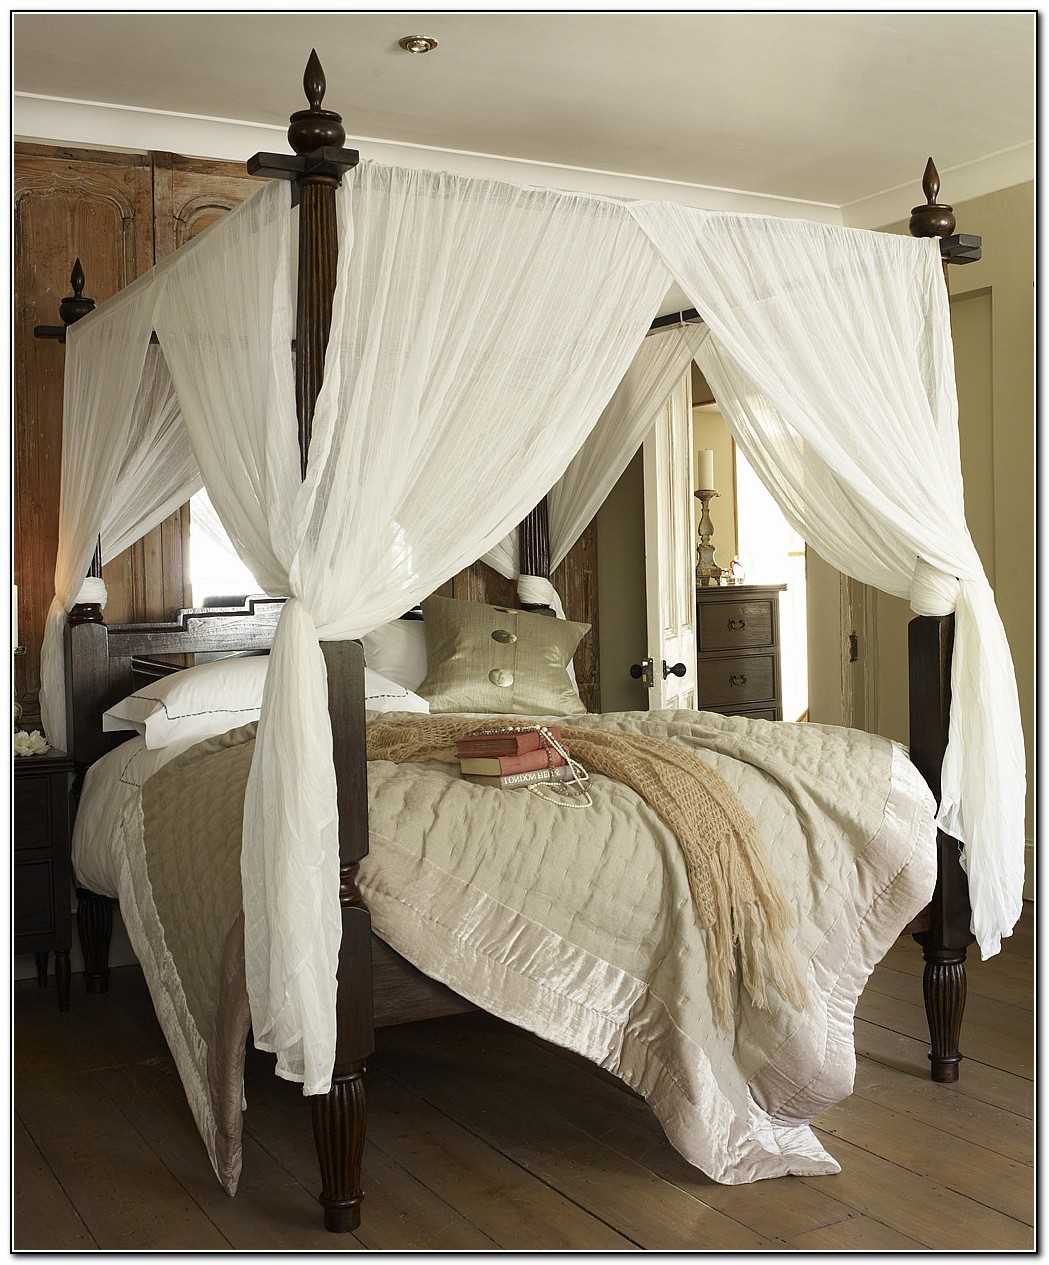 4 Poster Bed Canopy